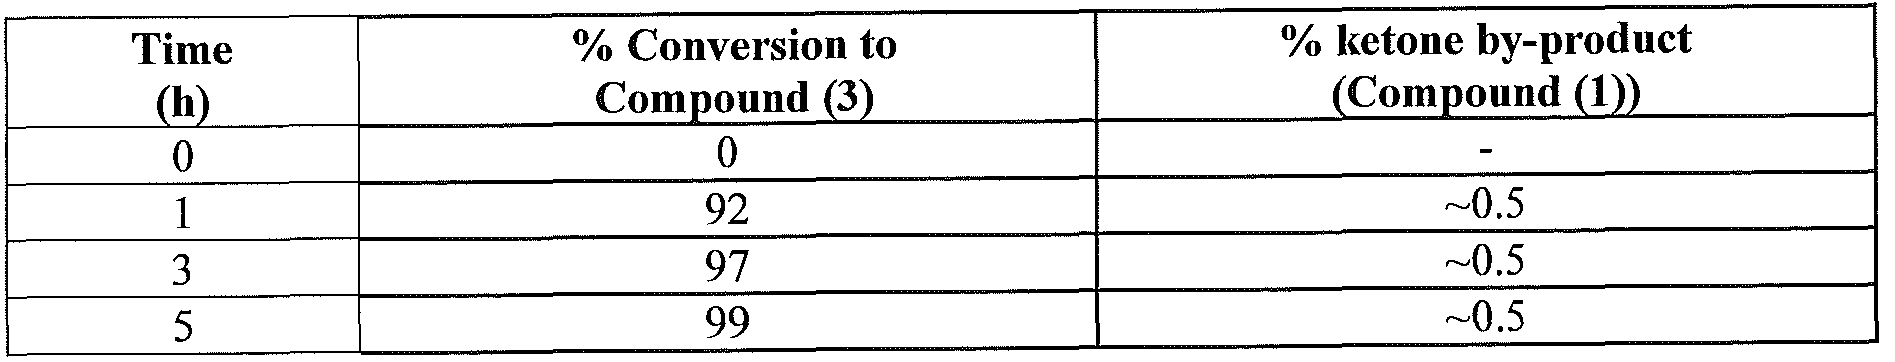 WO2011159910A2 - Biocatalysts and methods for the synthesis